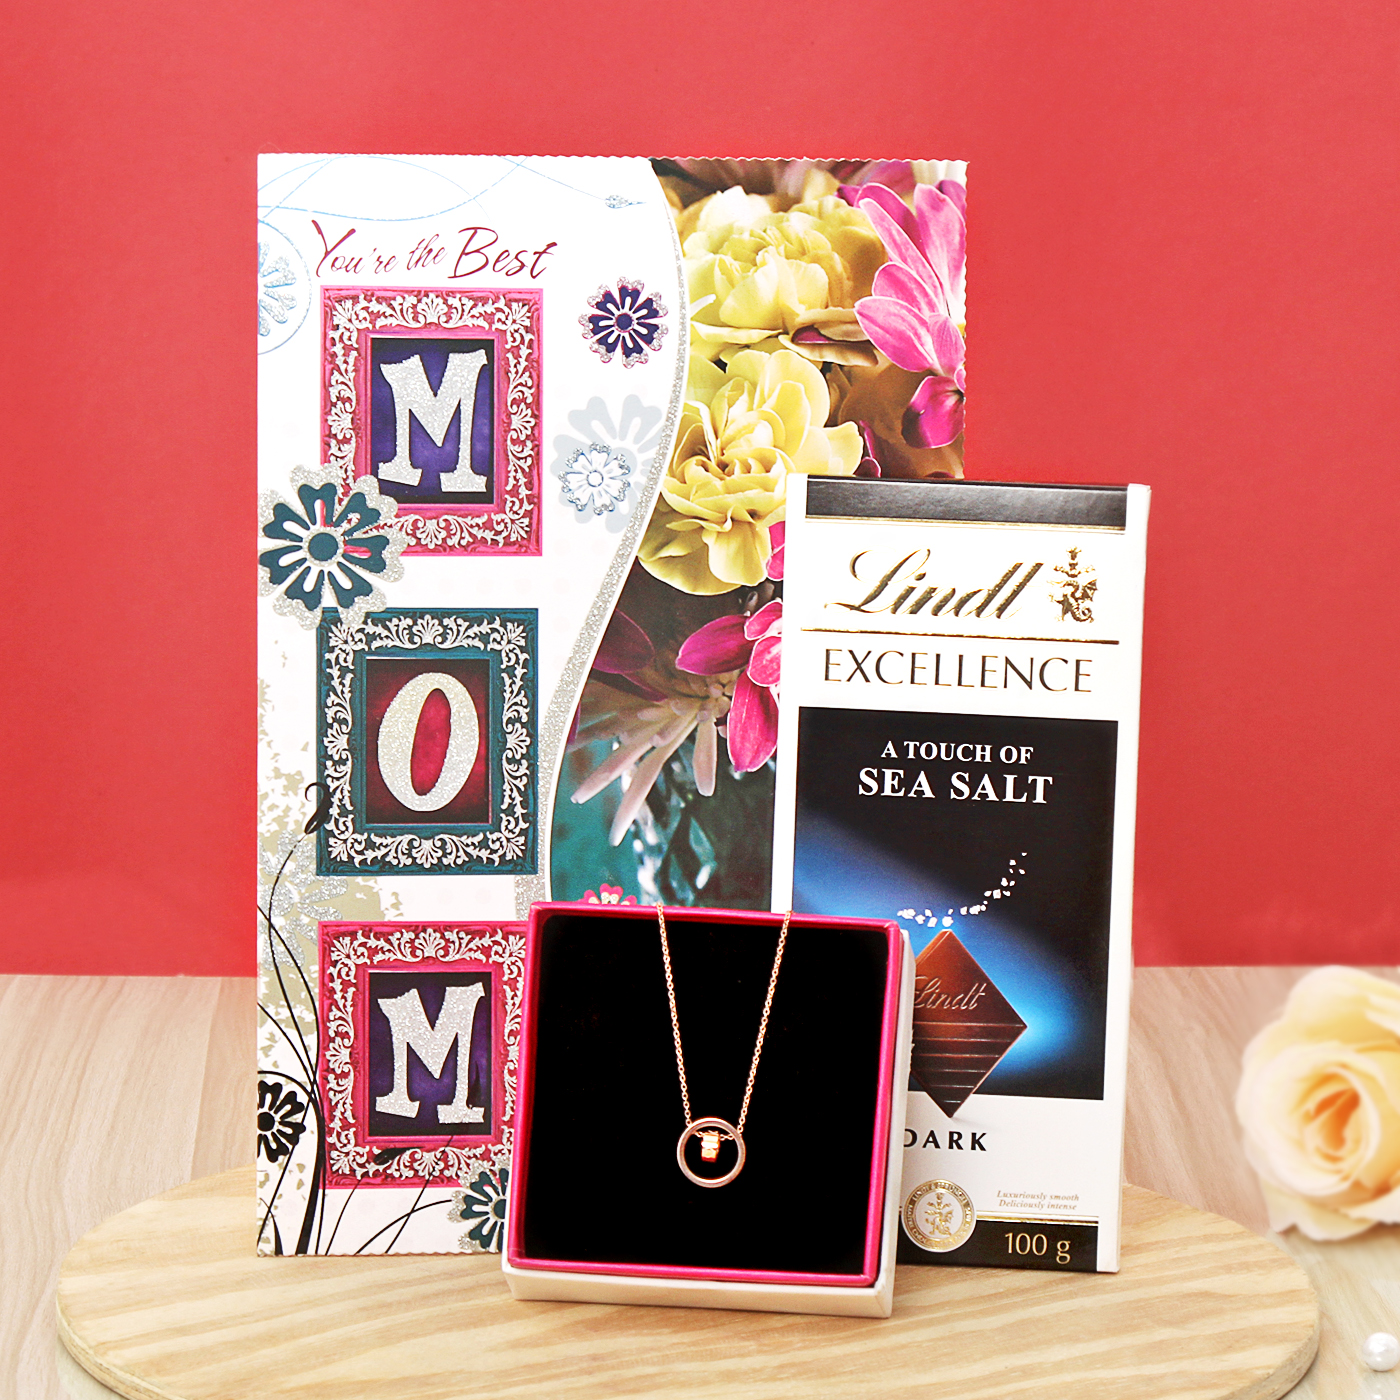 Rose Gold Finish Necklace with Lindt Sea Salt & Greeting for Mom